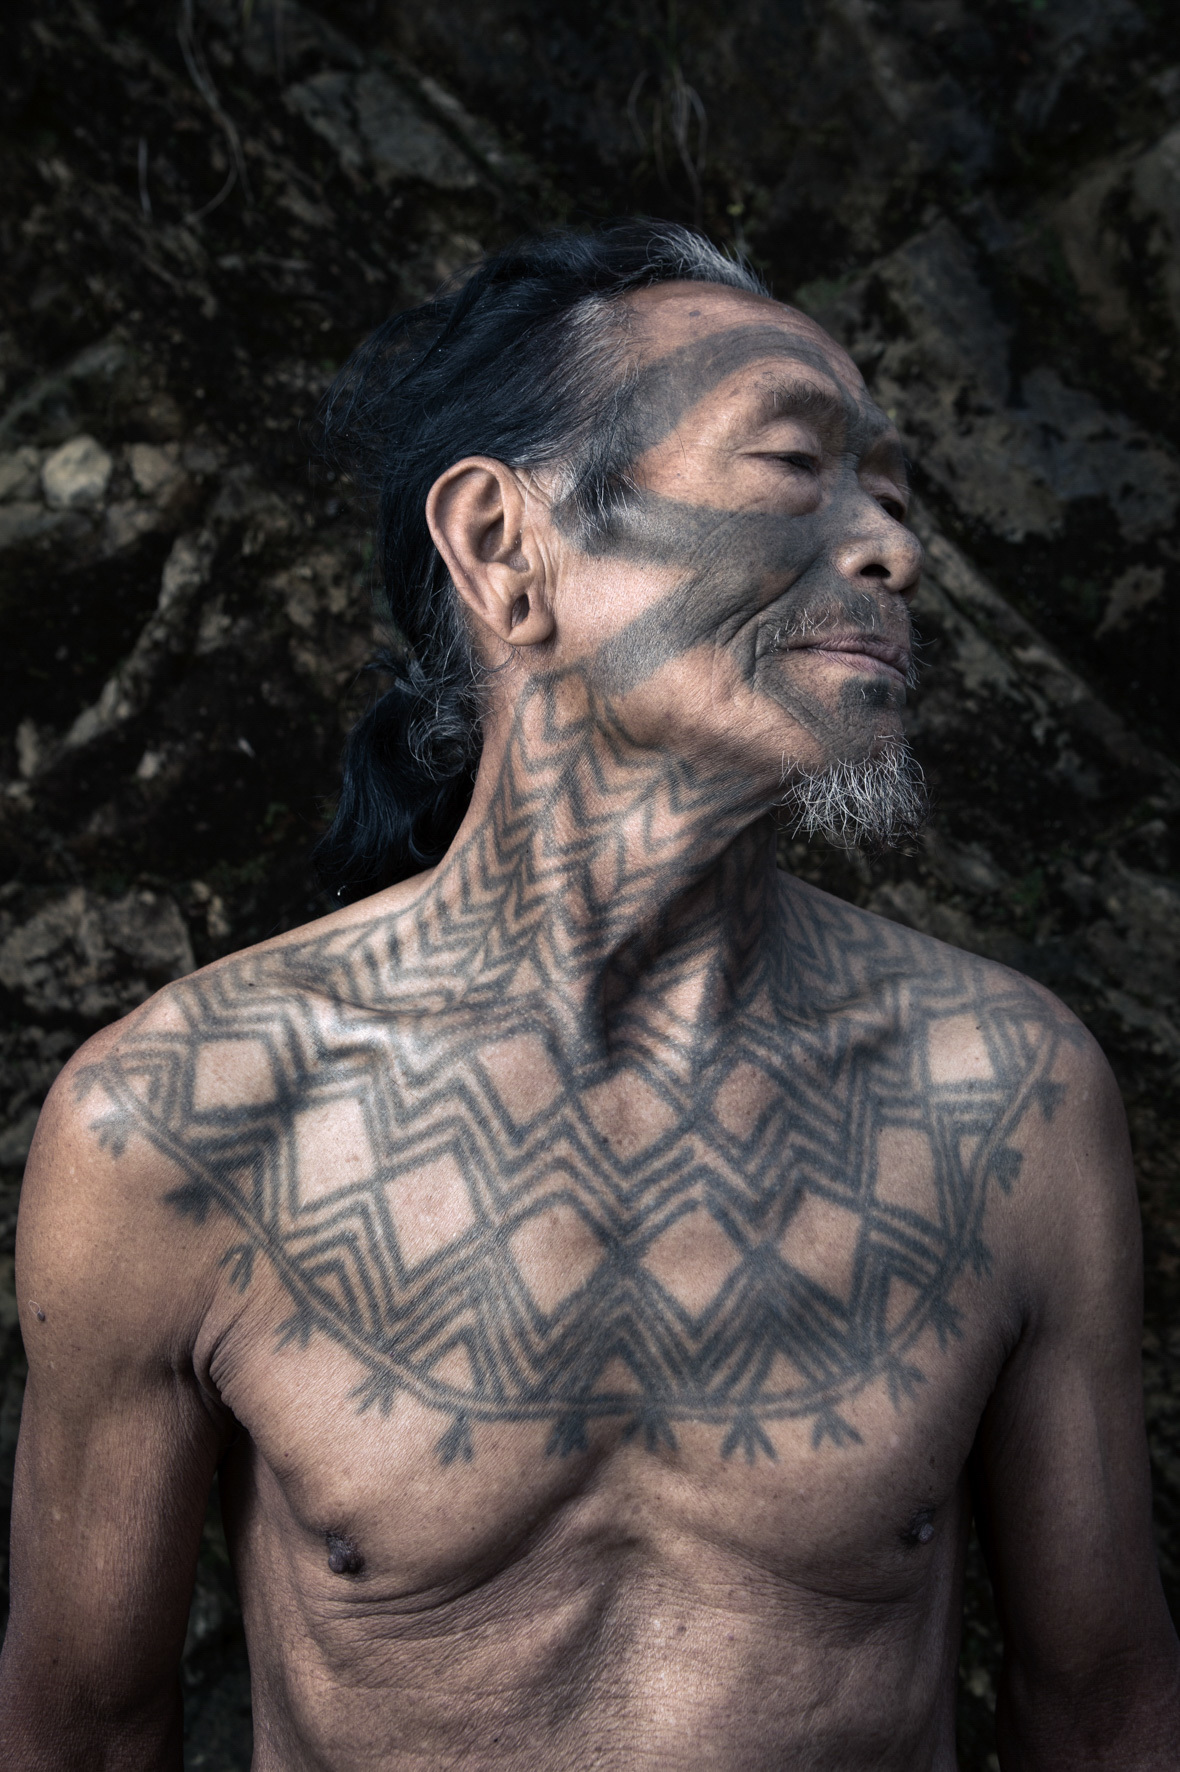 Photos Book Looks At The Tattoos Of A Tribe Of Former Headhunters Goats And Soda Npr